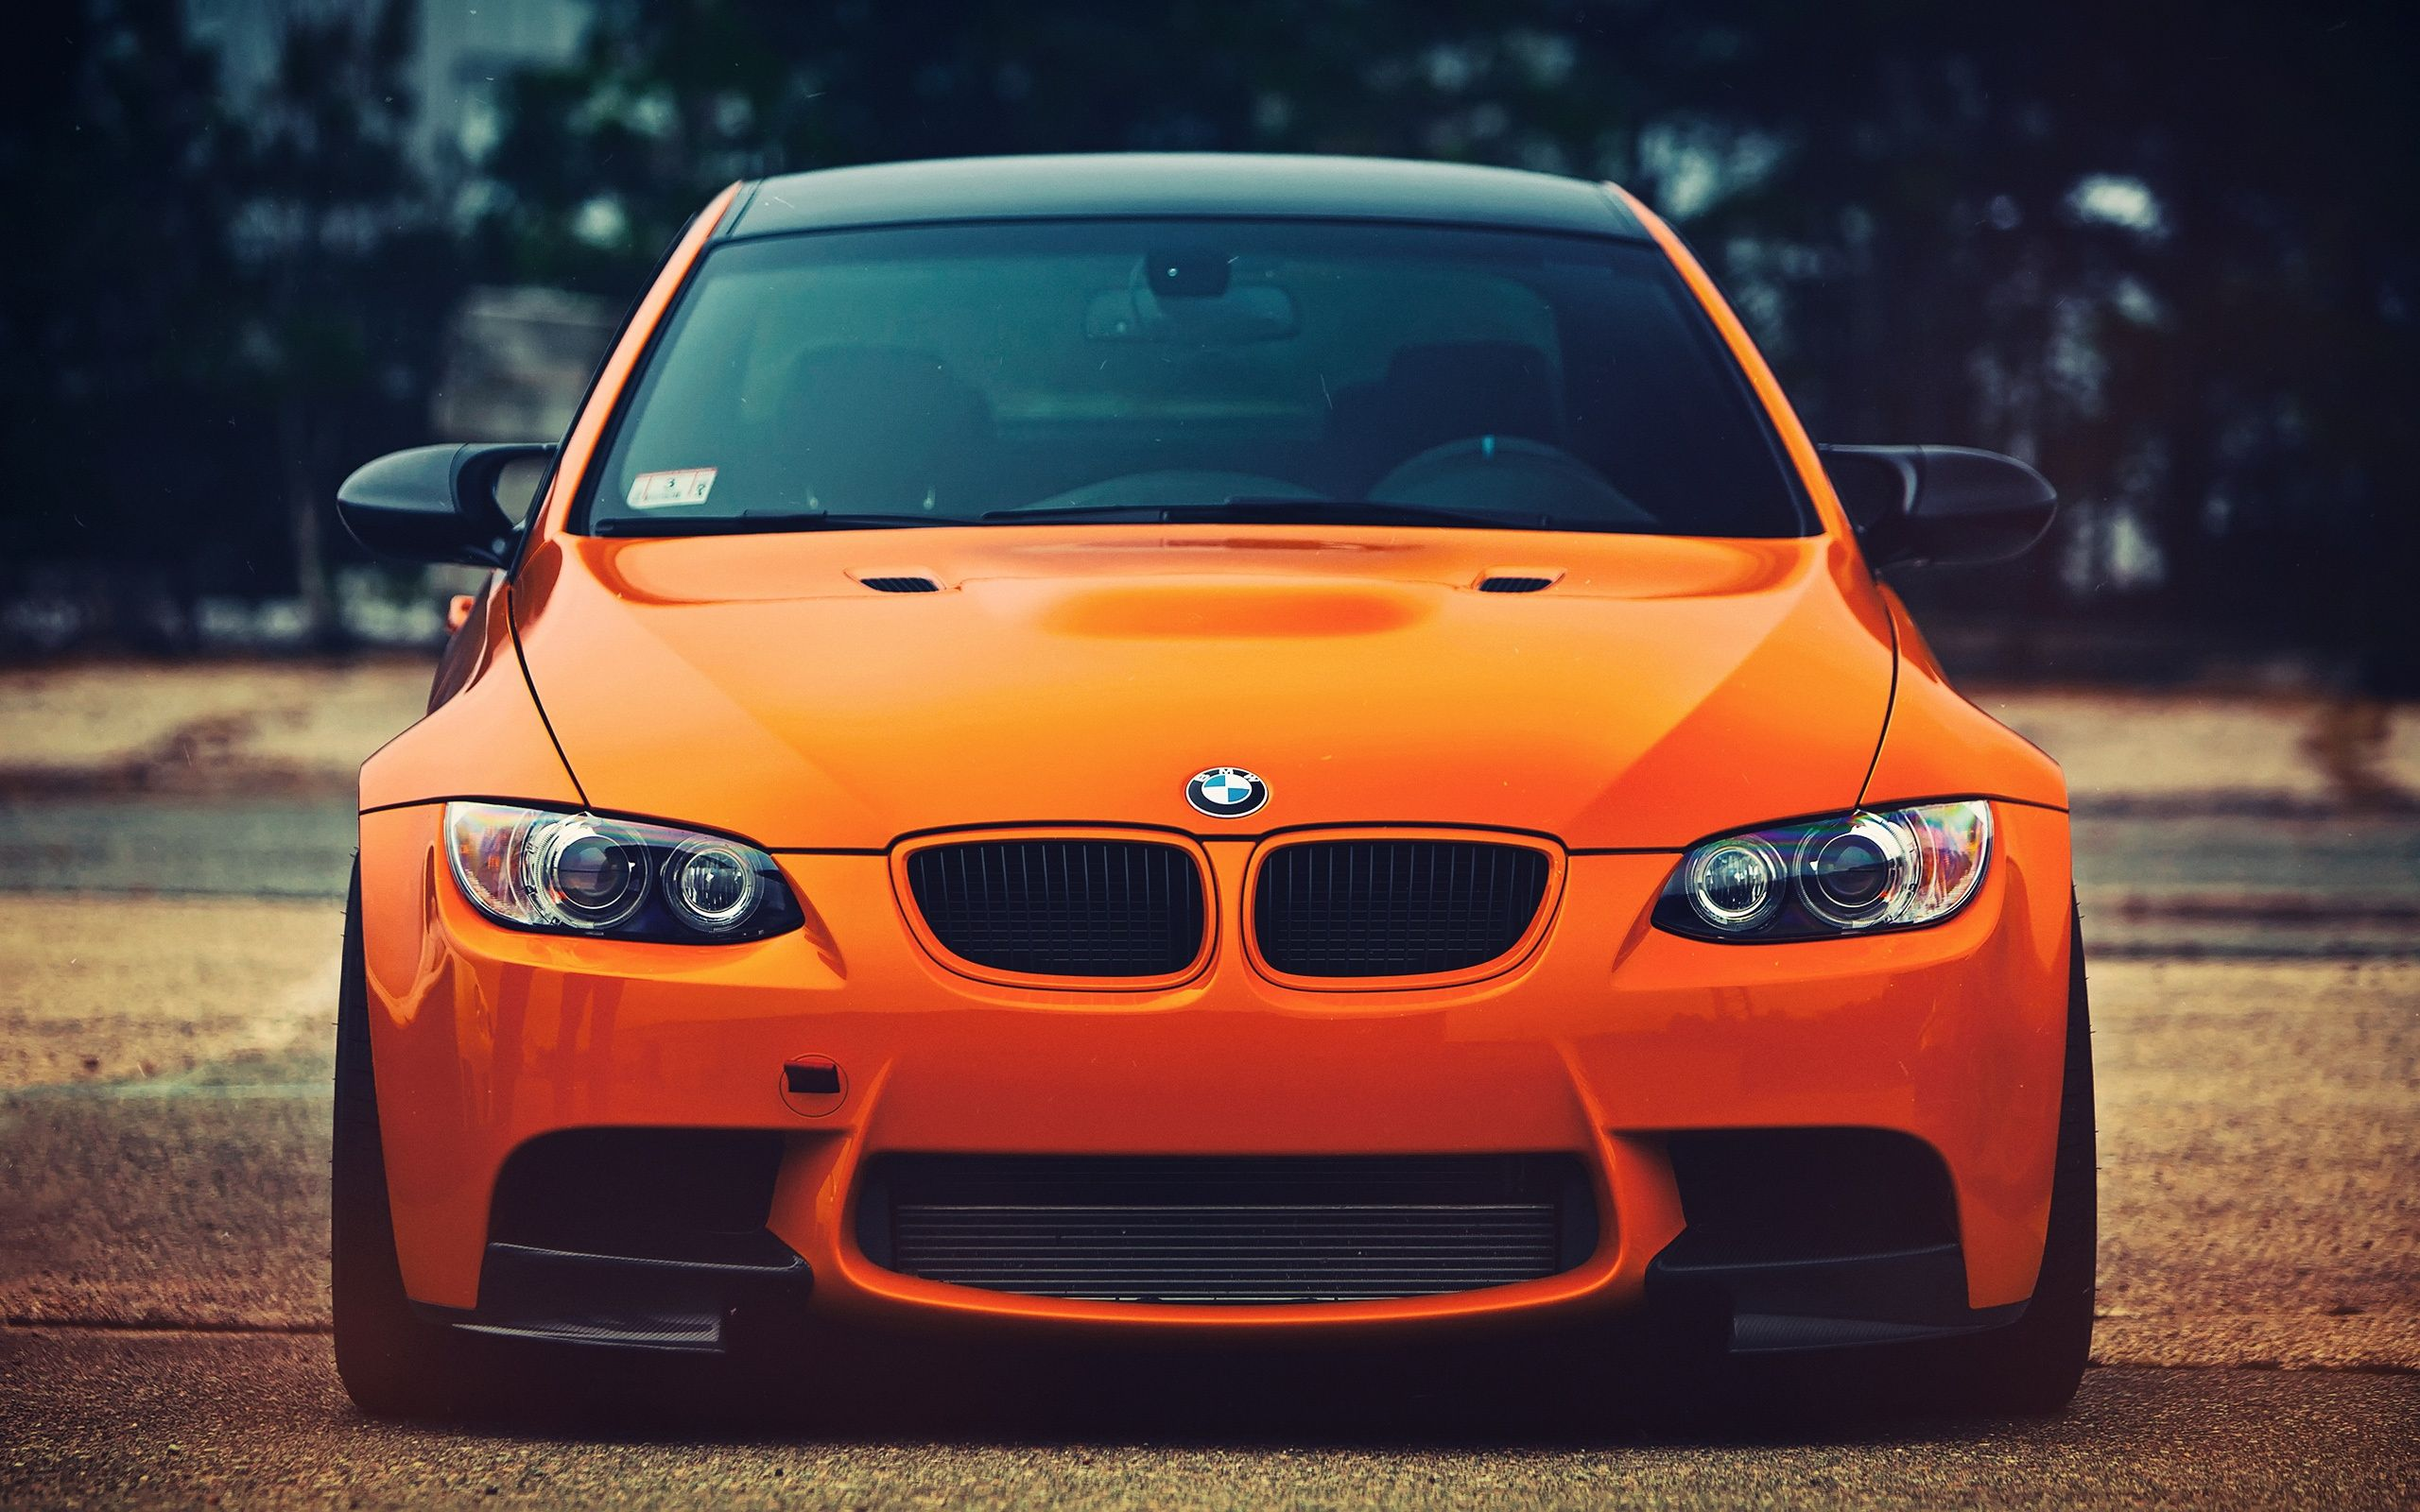 Bmw Performance Driving School >> BMW M3 orange car front view Wallpapers | HD Desktop Wallpaper ... | [Whip] EDM × BMW ...